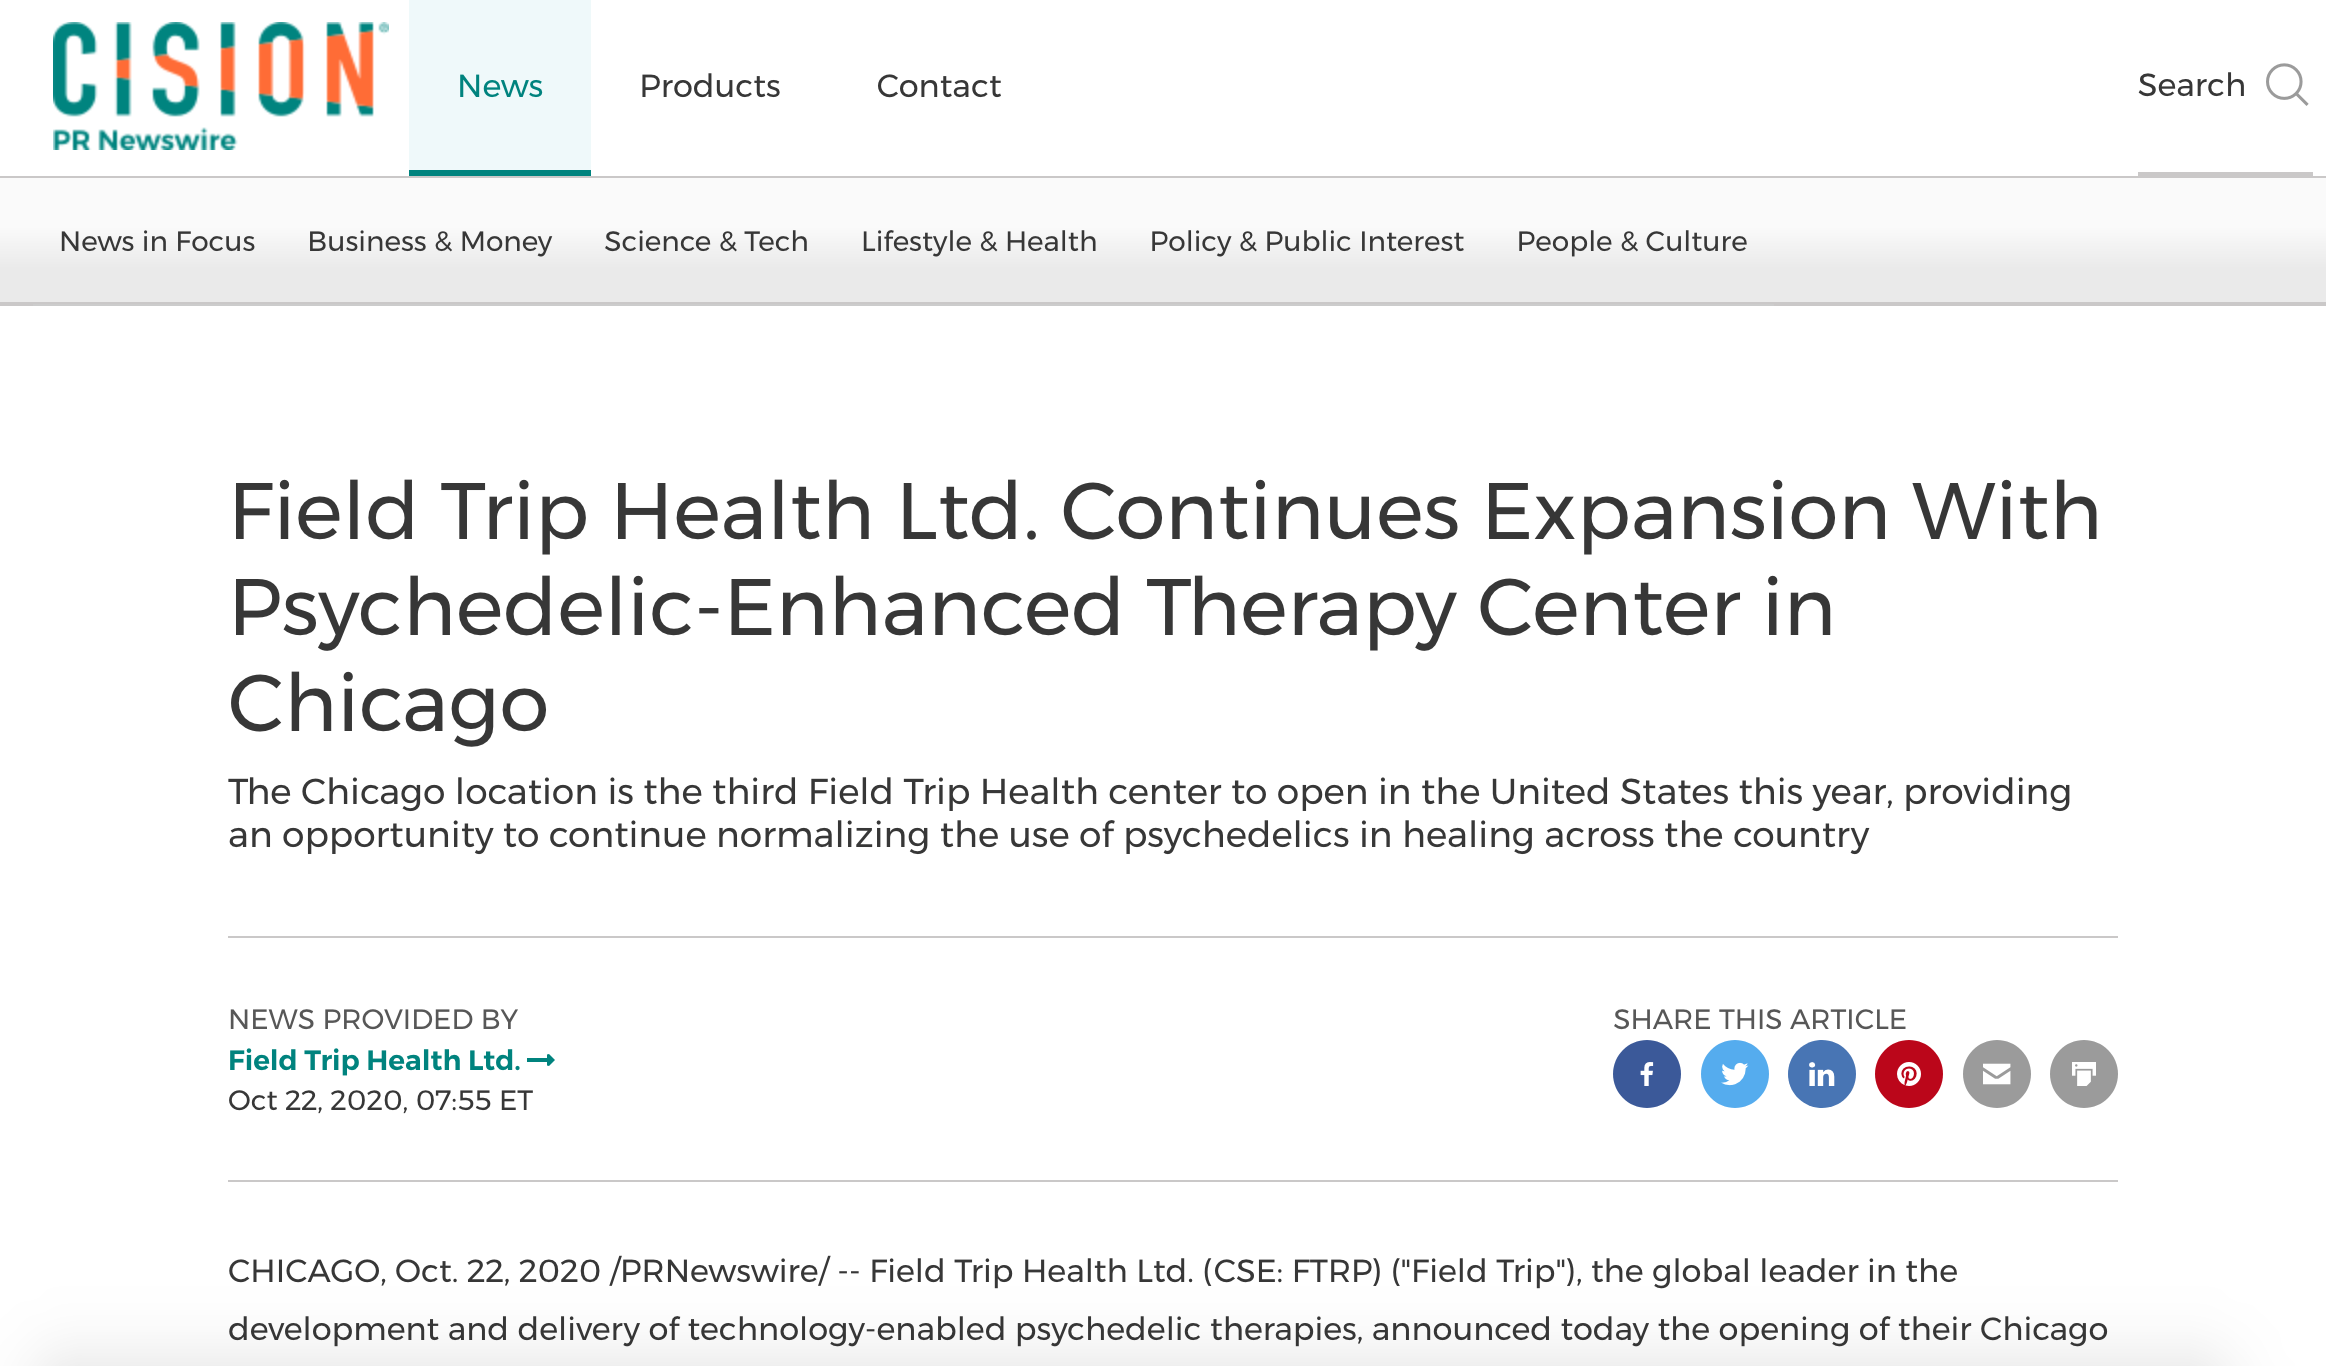 Field Trip Health Ltd. Continues Expansion With Psychedelic-Enhanced Therapy Center in Chicago